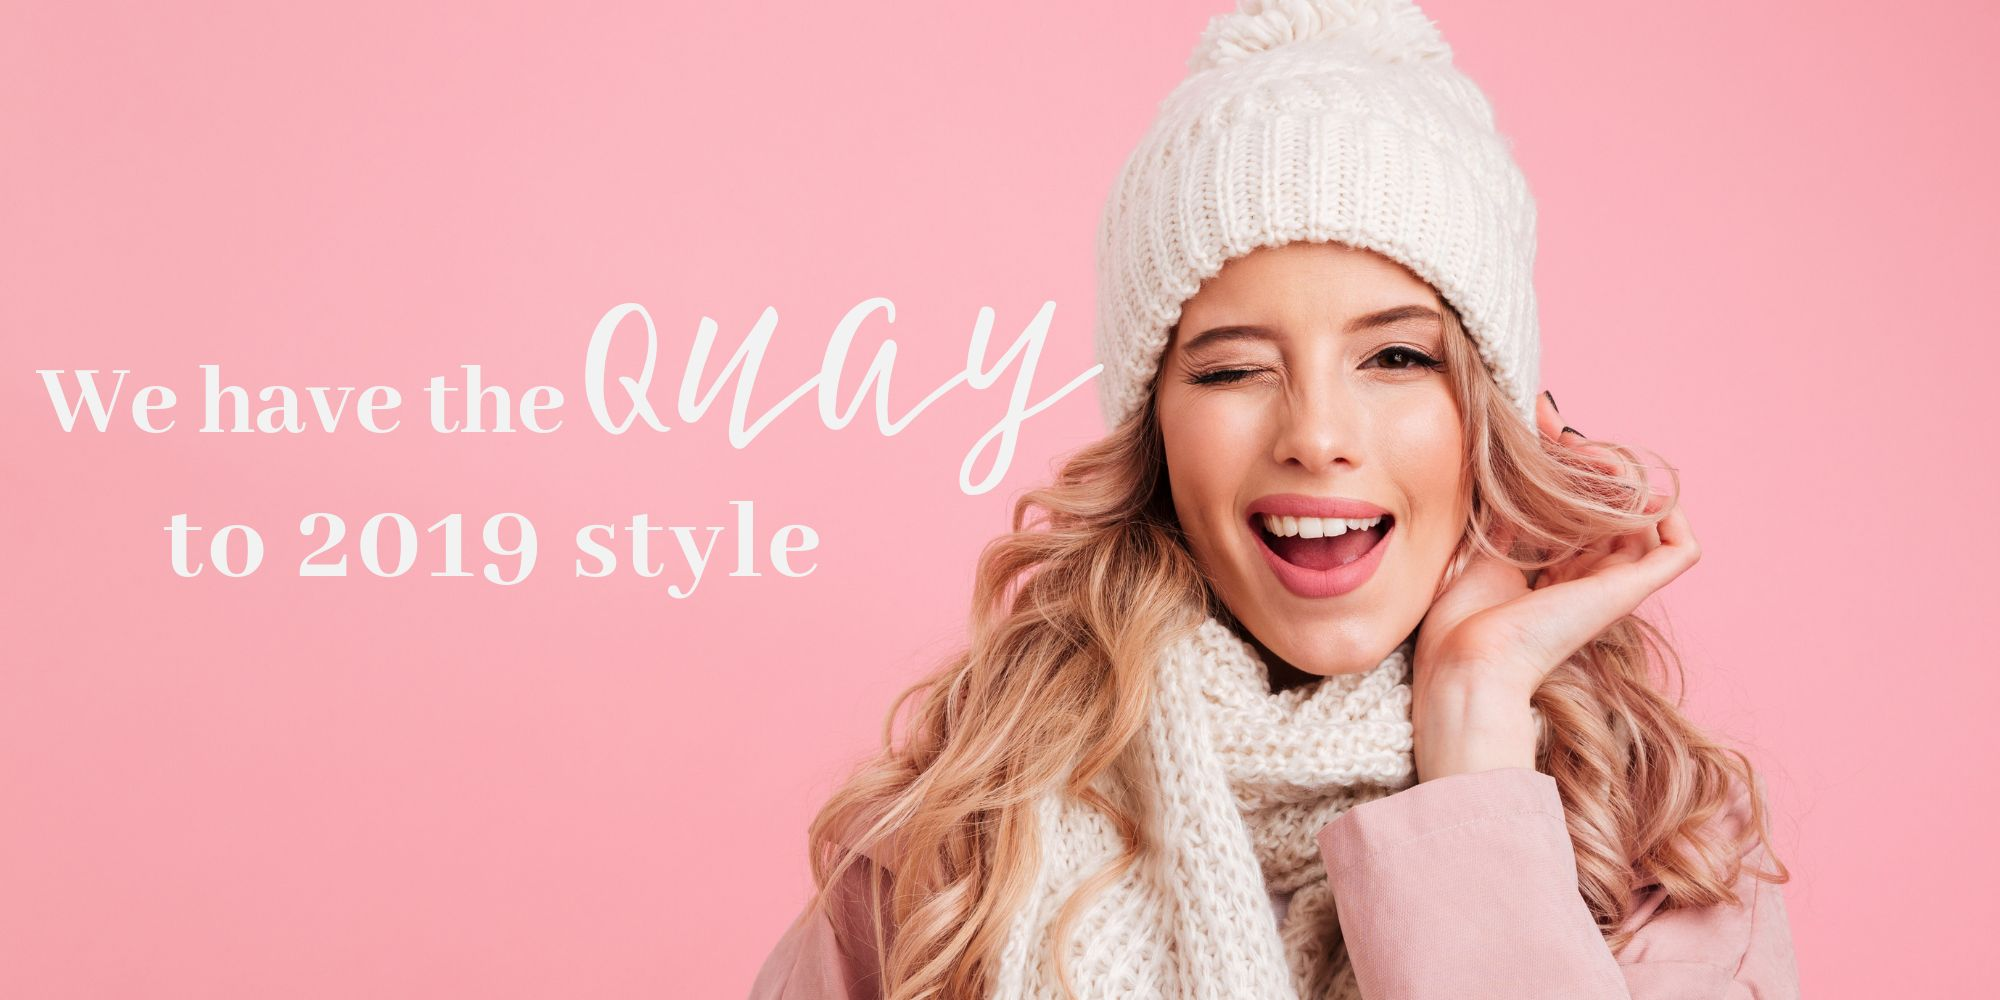 We have the Quay to 2019 style